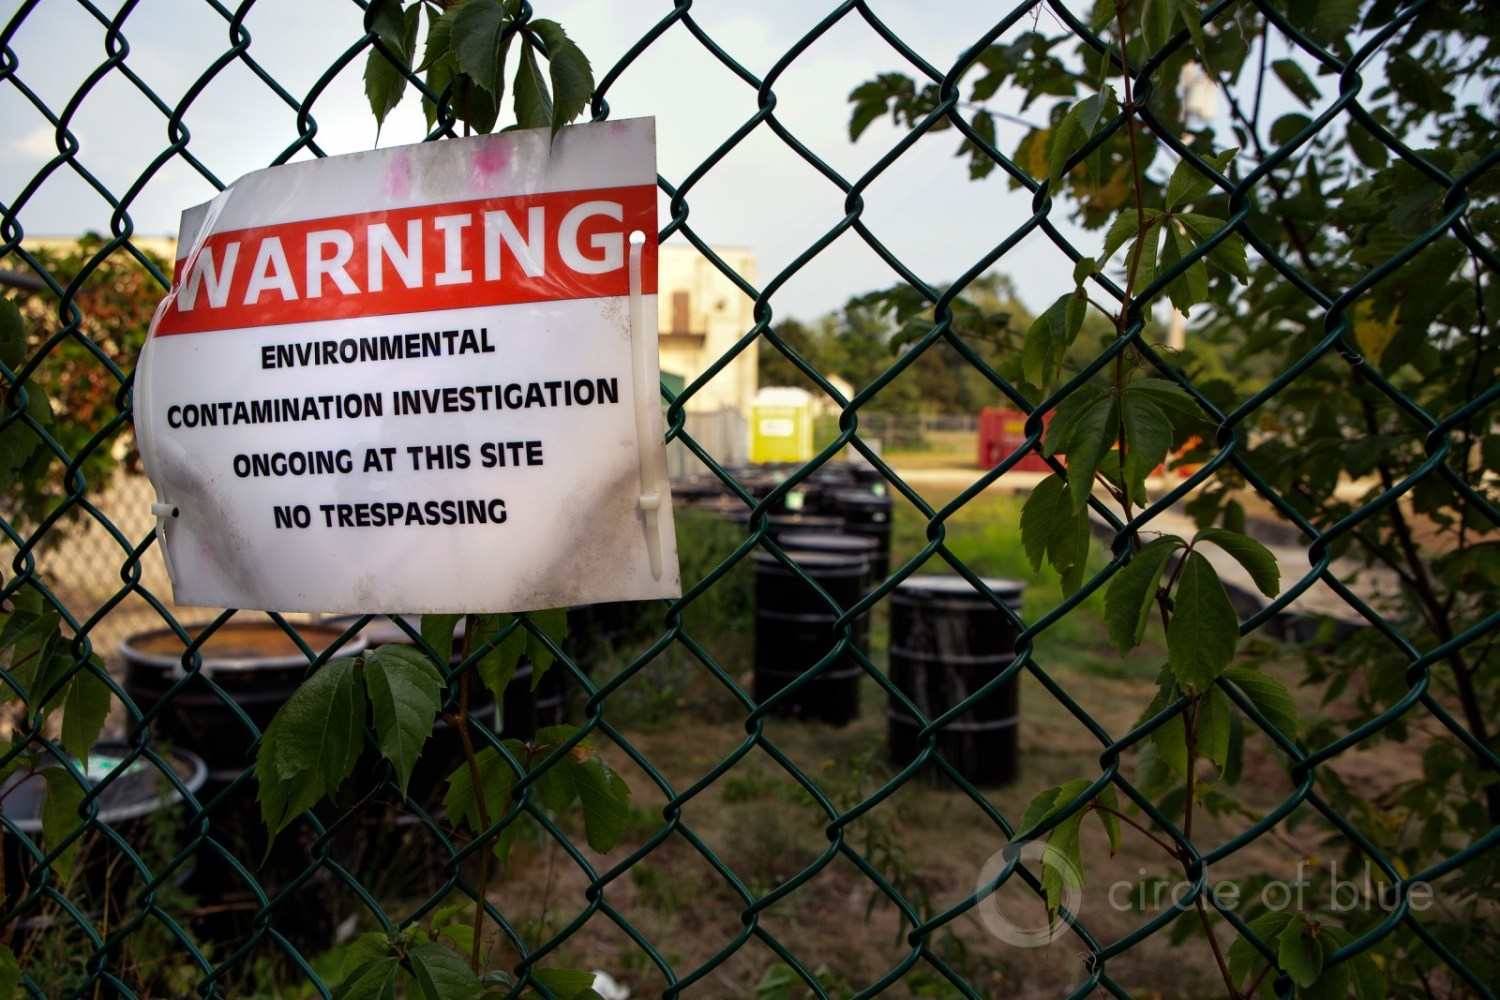 Michigan PFAS by the numbers: How much is unsafe? - Circle